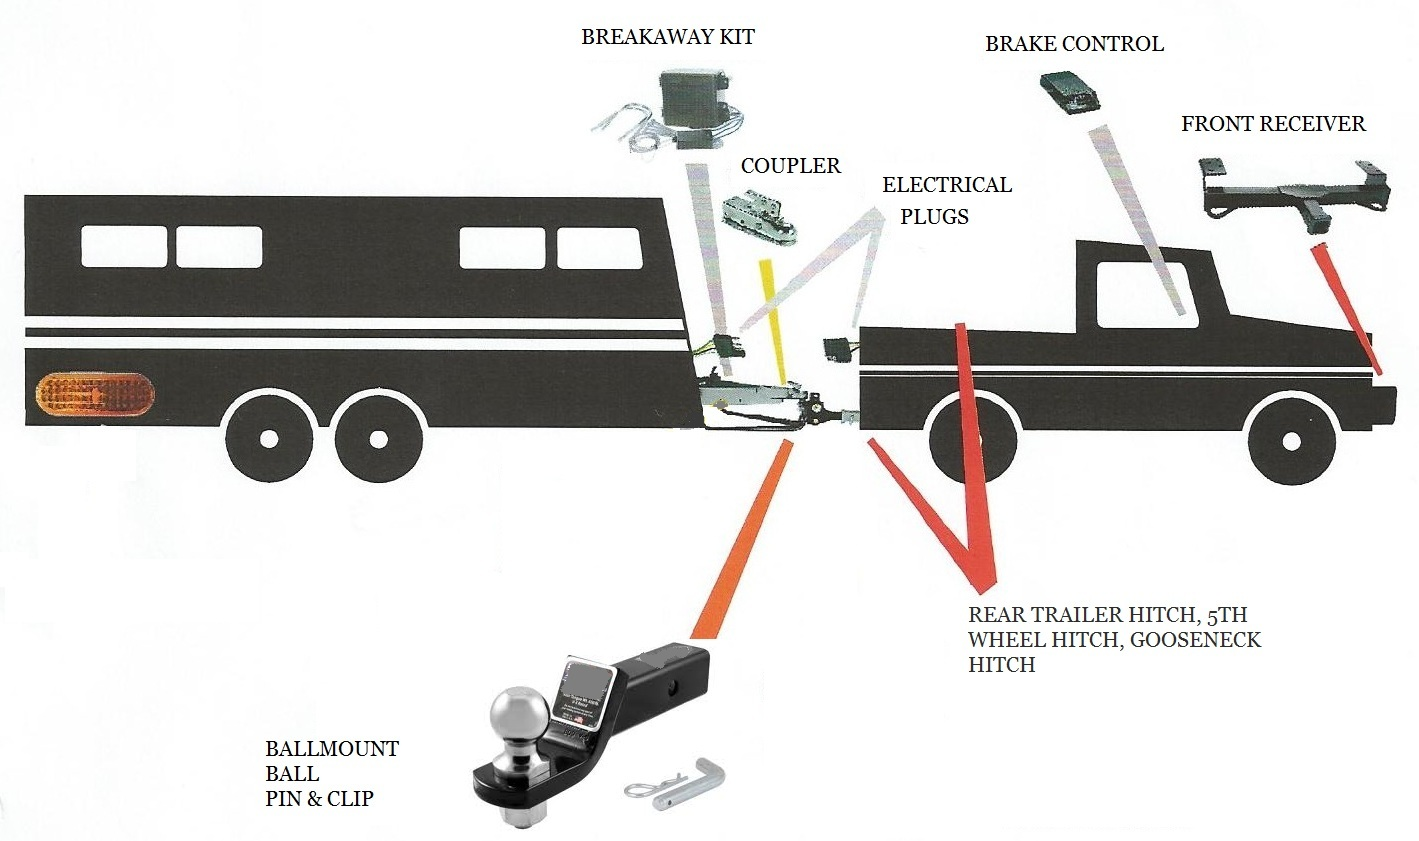 Trailer components rv towing wiring diagram roslonek net,Rv Dc Volt Circuit Breaker Wiring Diagram Your Trailer